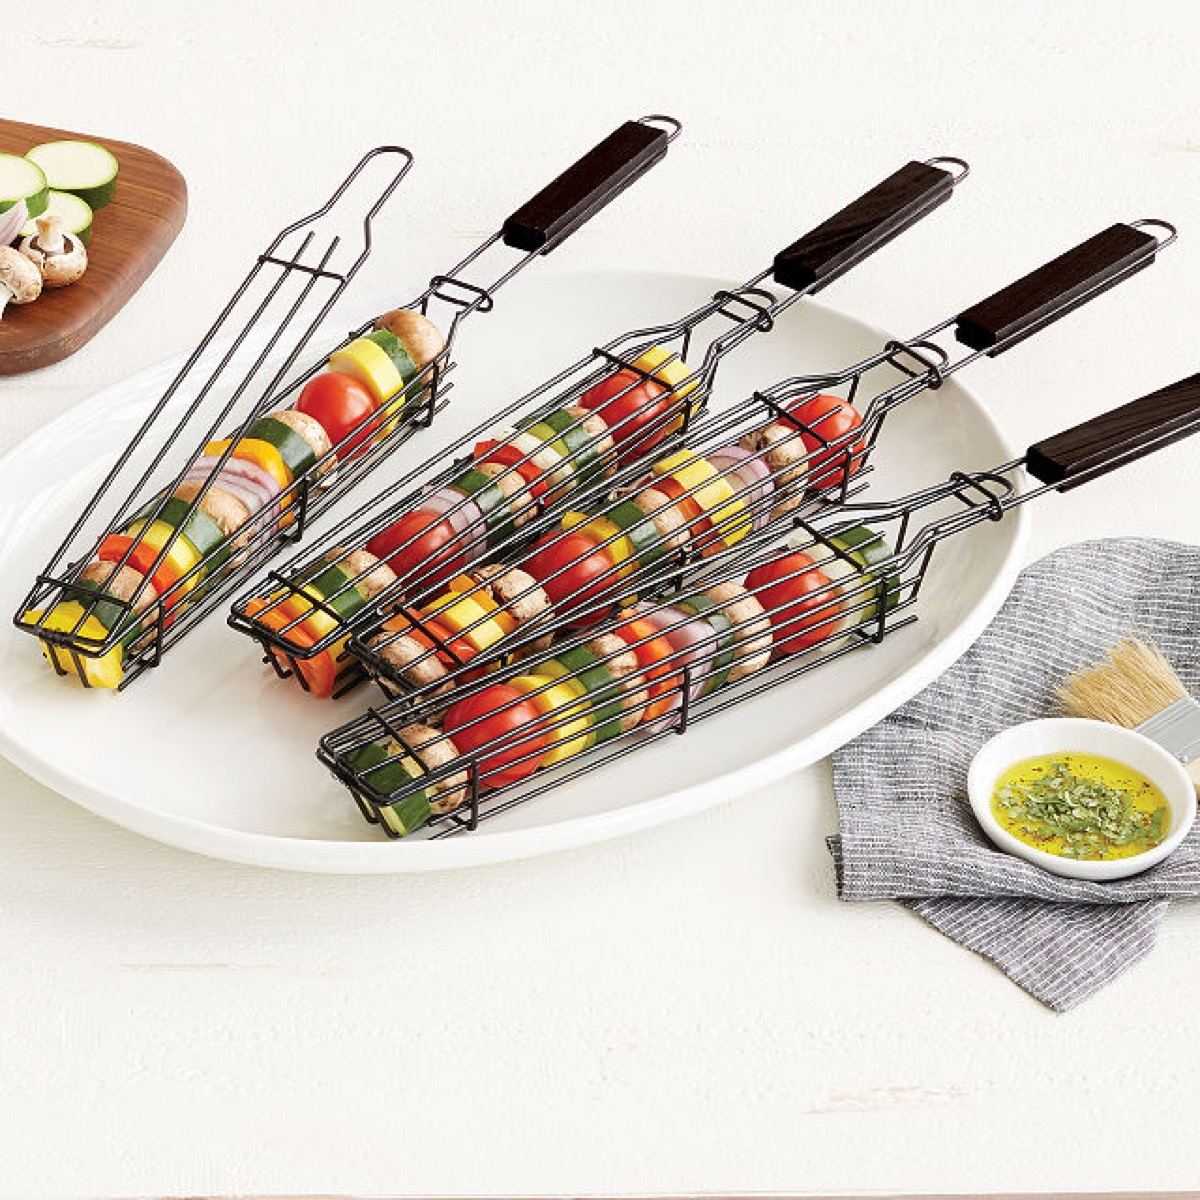 kabob griling baskets with vegetables in them